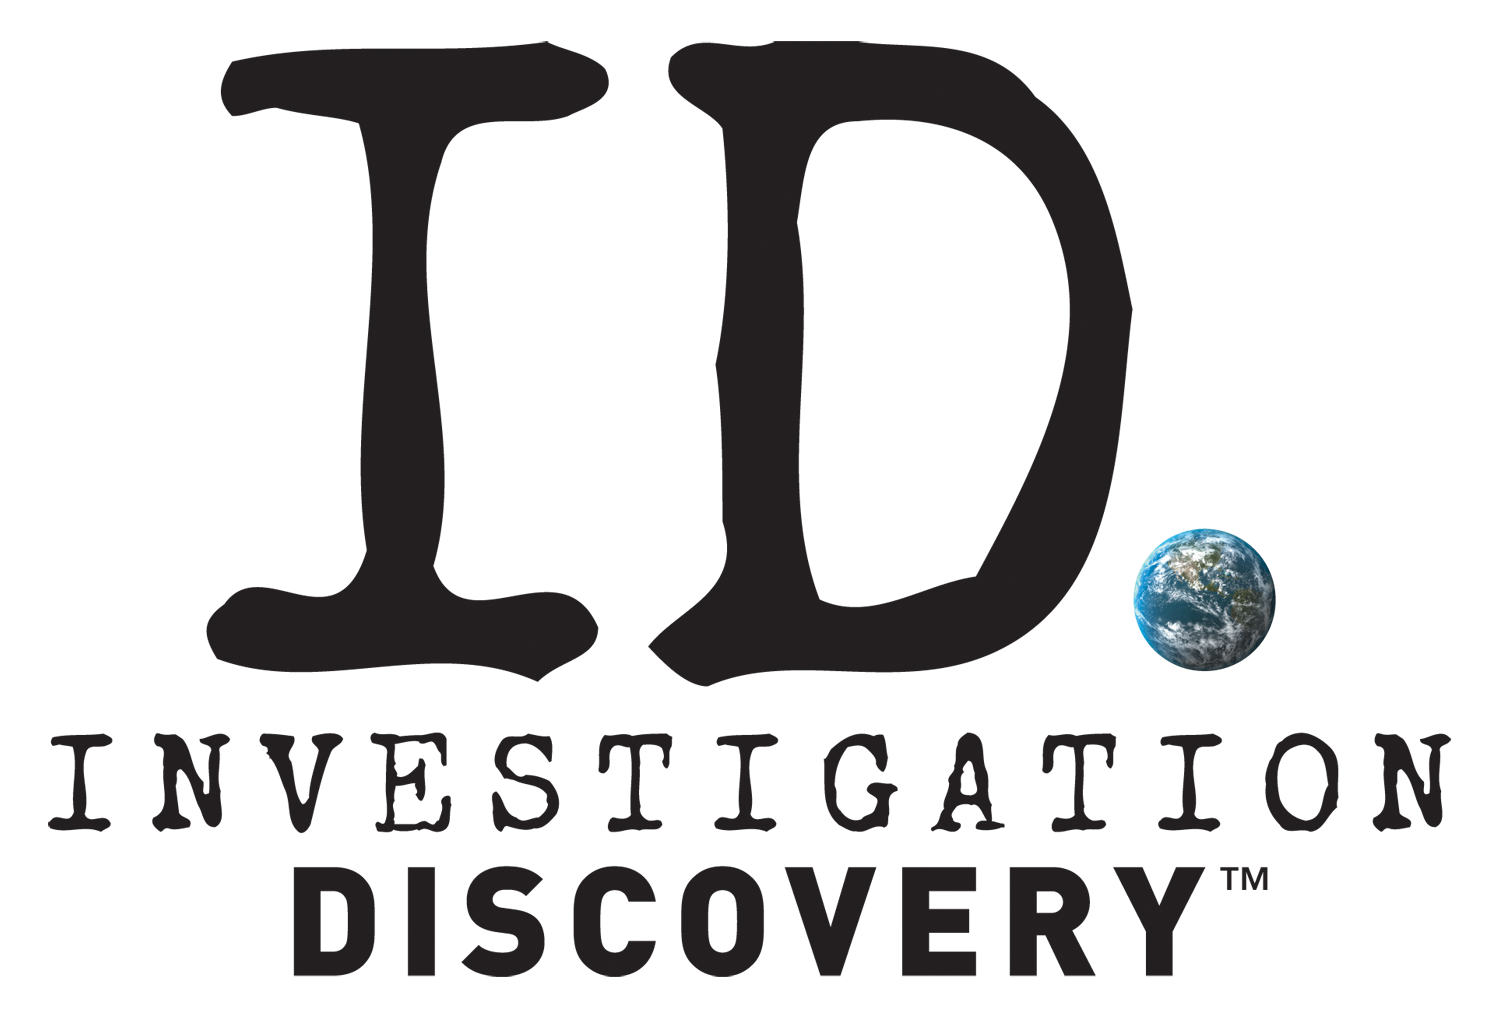 discovery ca image search results 1500x1020